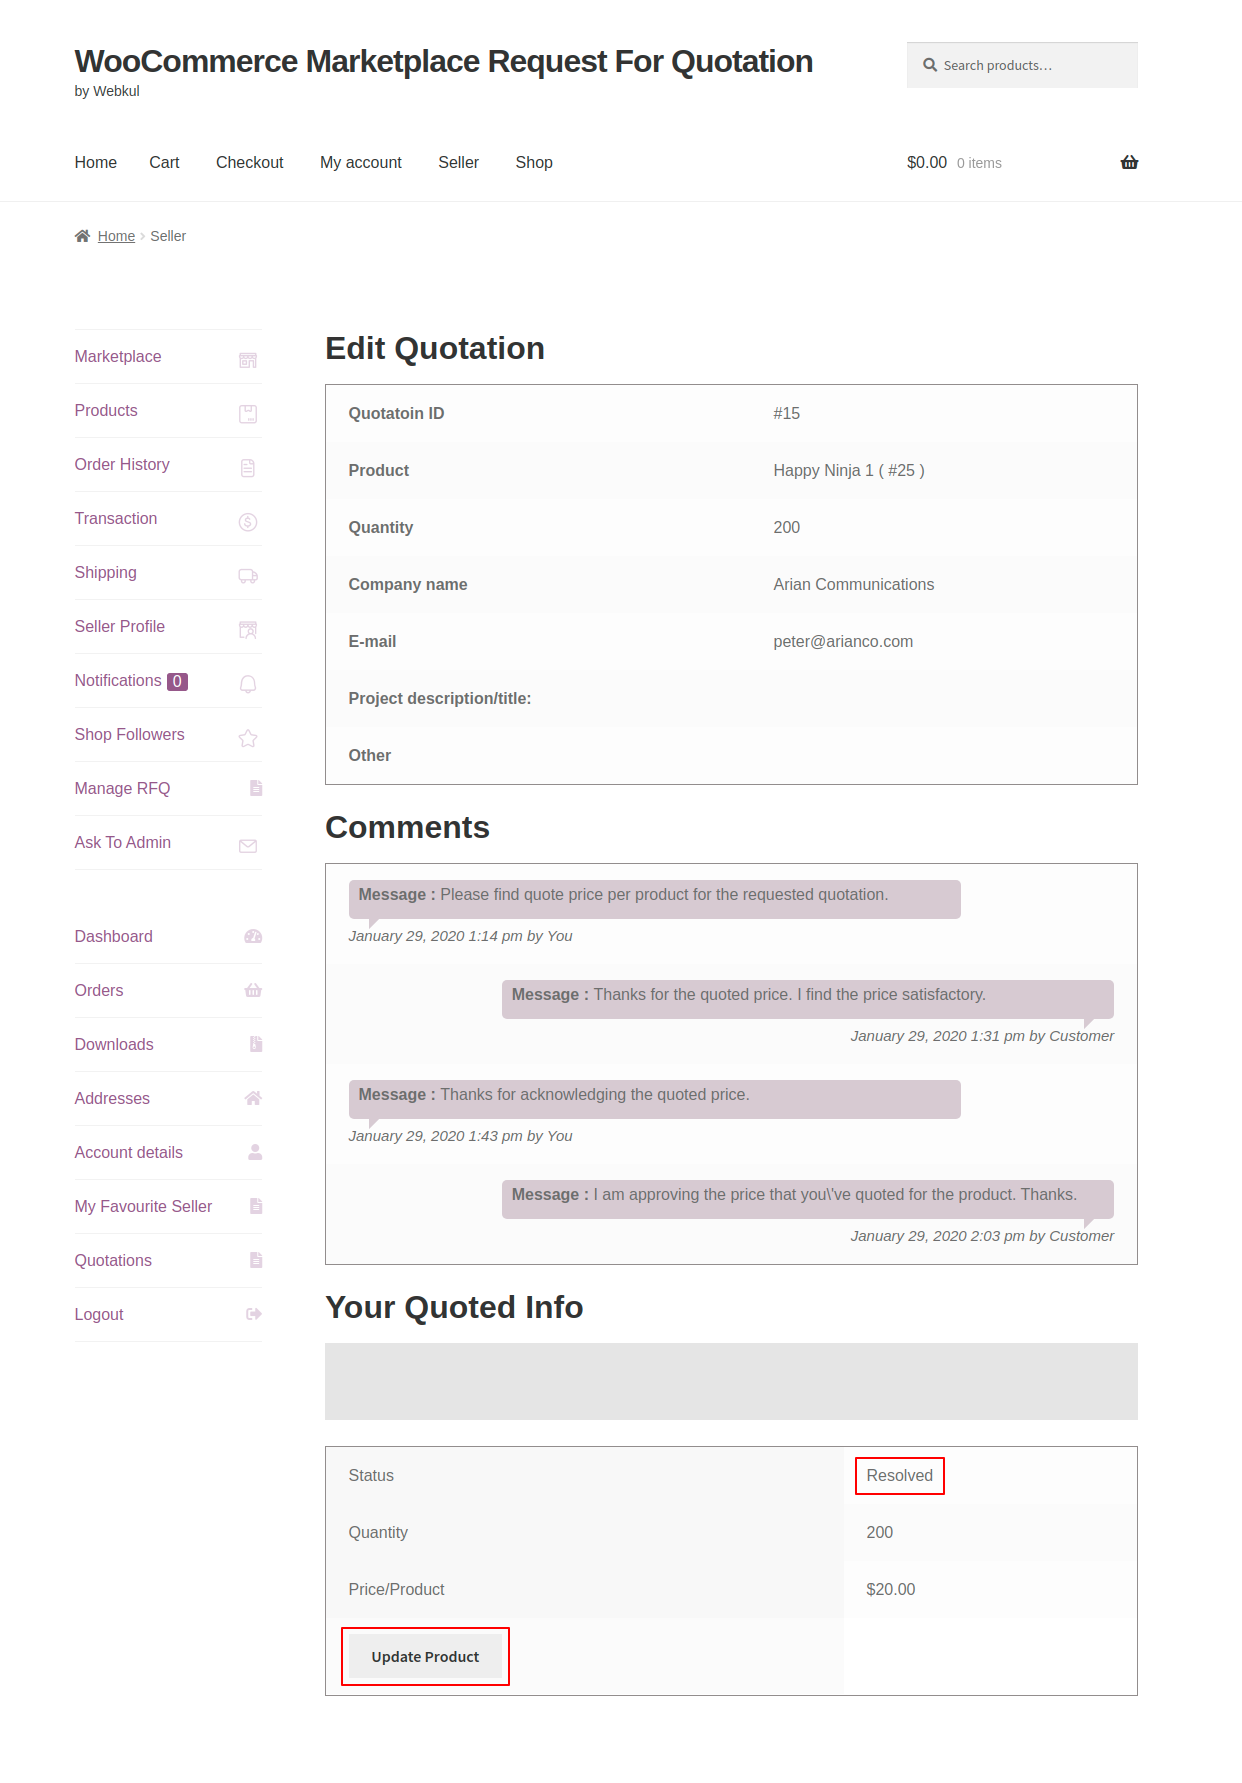 webkul-woocommerce-marketplace-request-for-quotation-seller-end-update-product